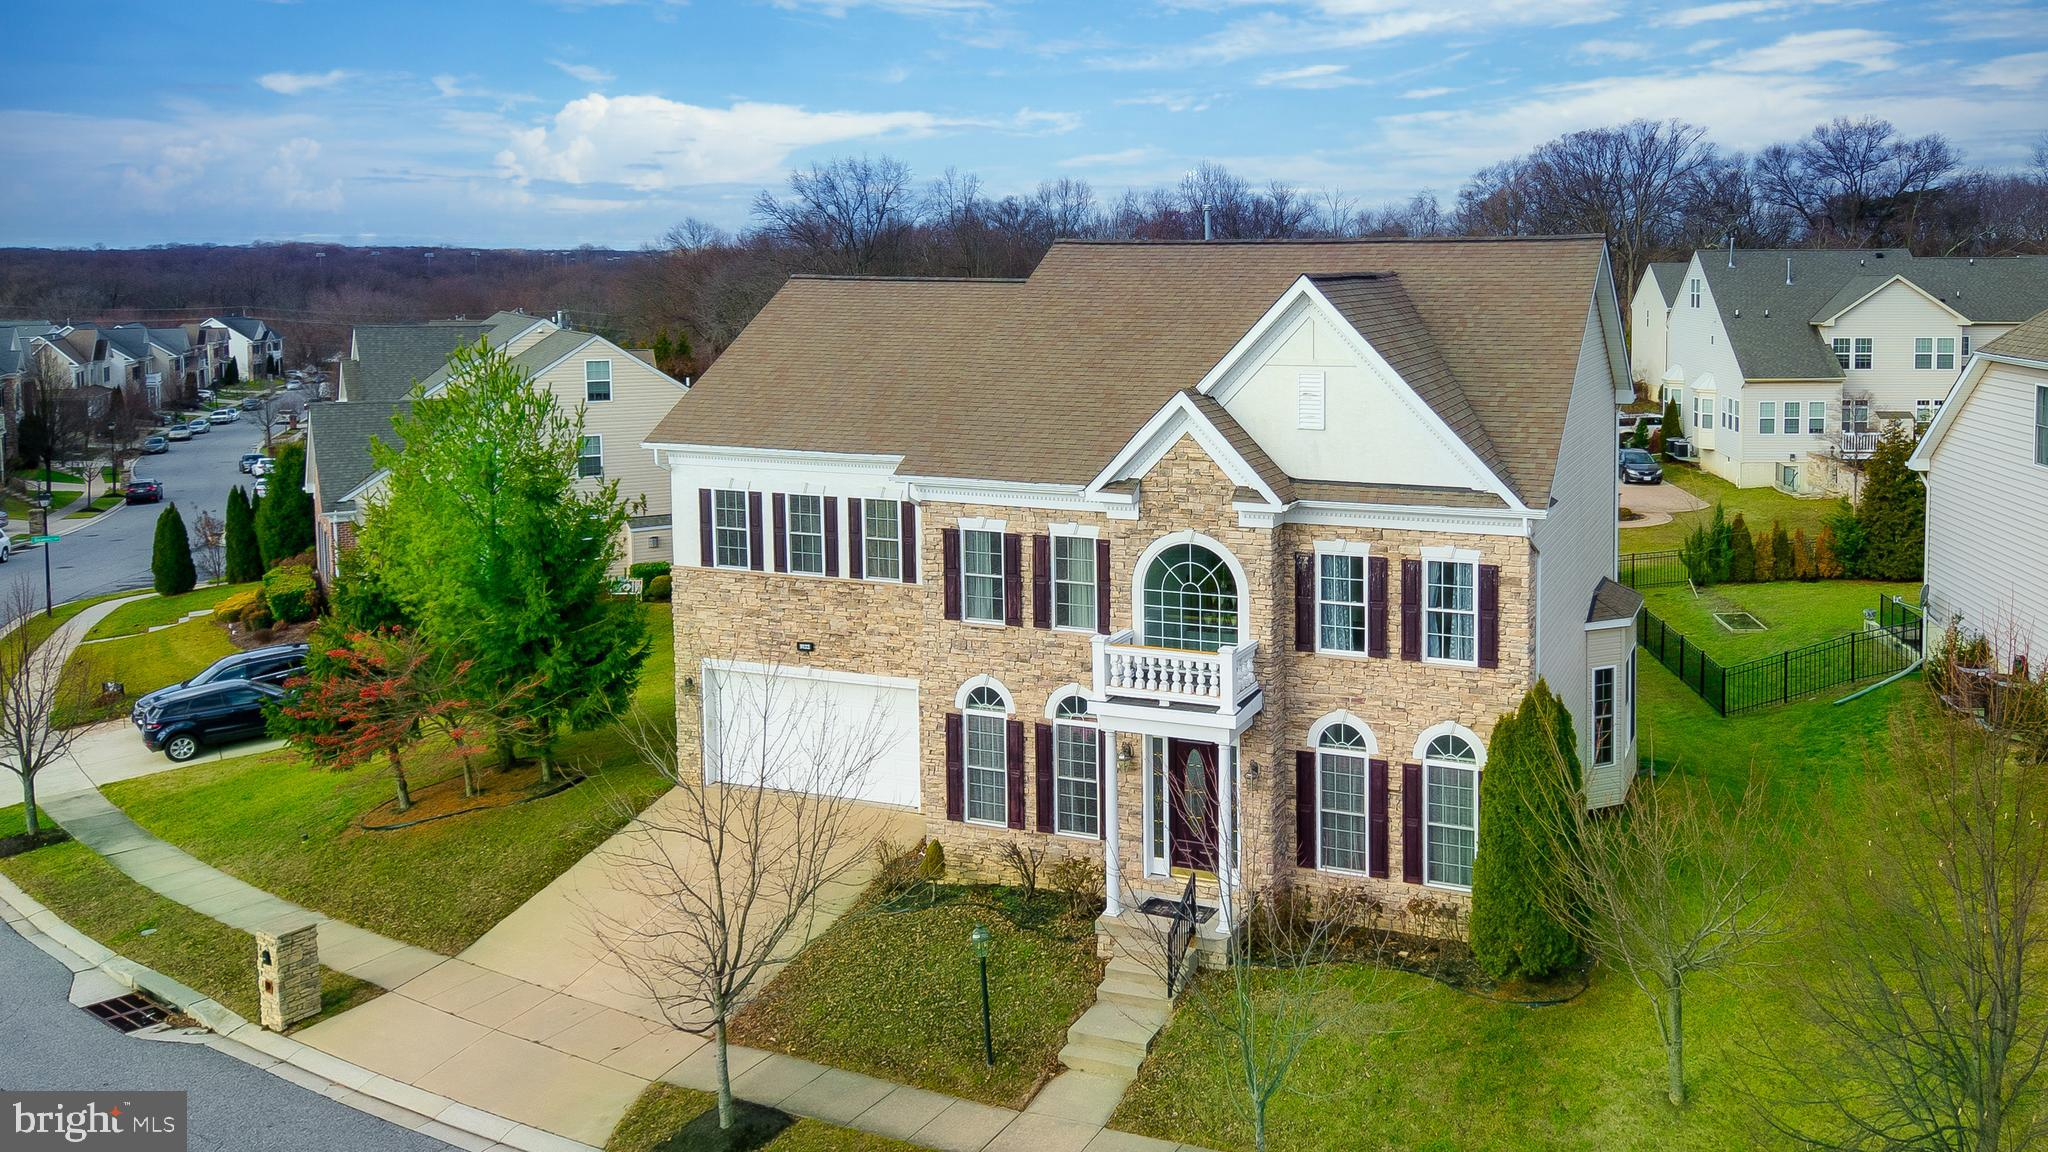 9122 PANORAMA DRIVE, PERRY HALL, MD 21128